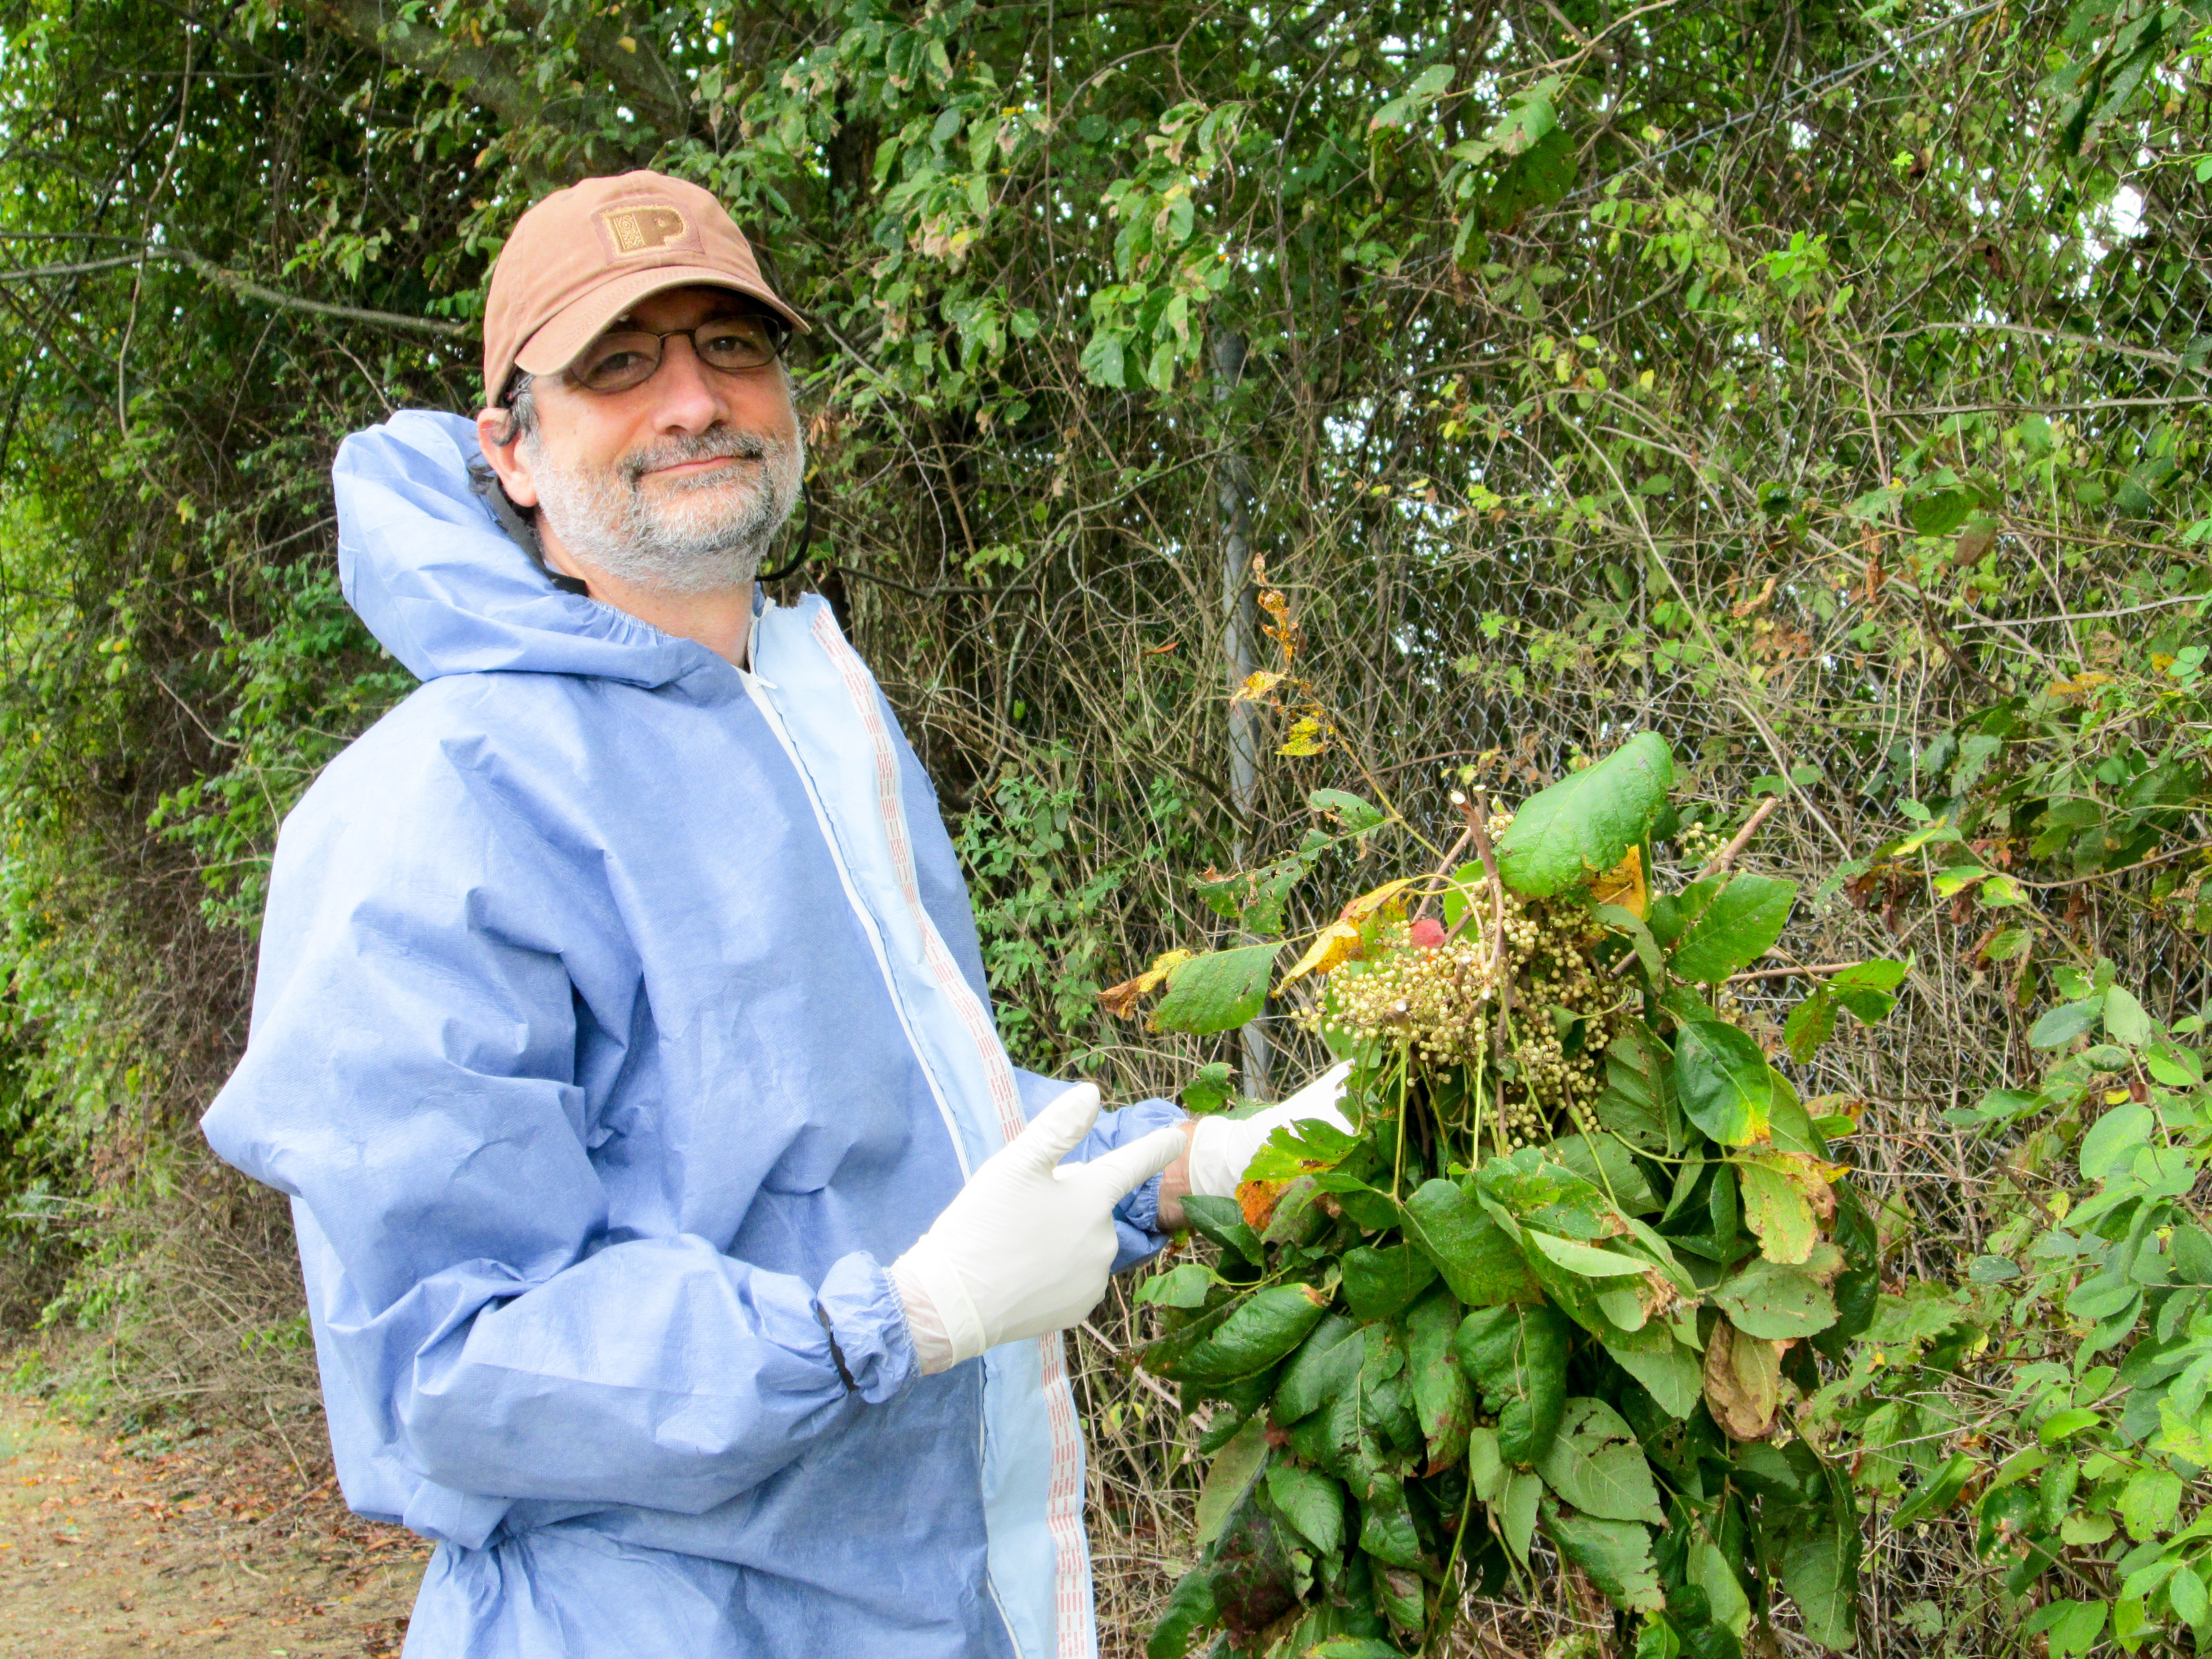 Don't Touch! A Scientist's Advice For Spotting Poison Ivy Before It Ruins Your Summer